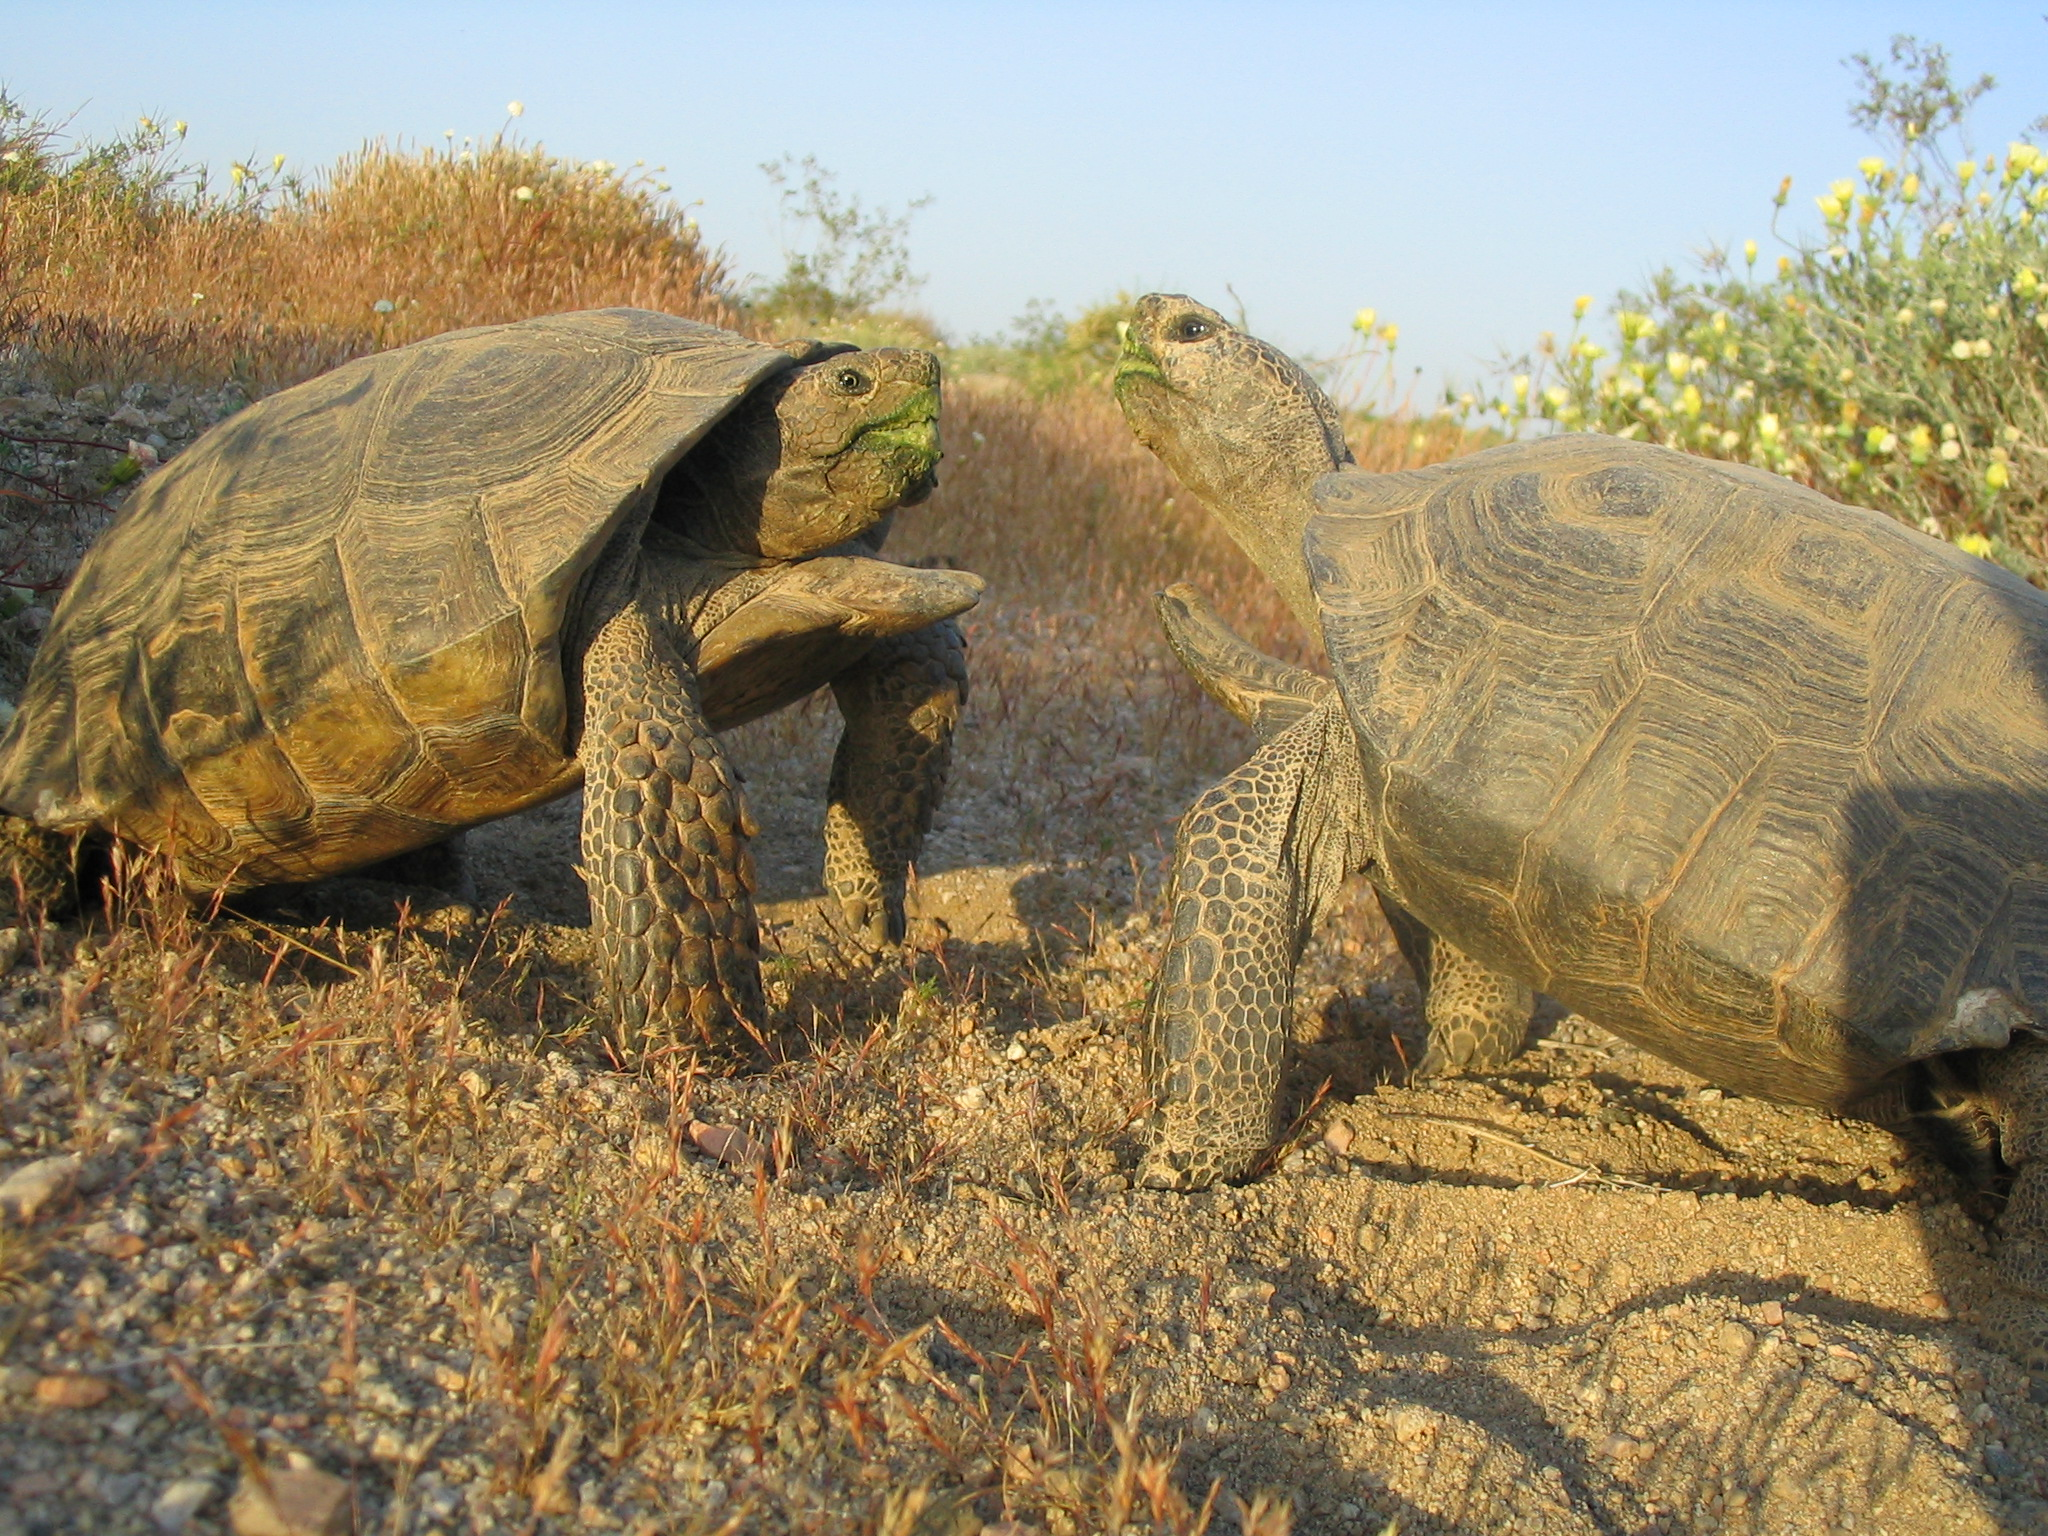 Male tortoises battling for a female.